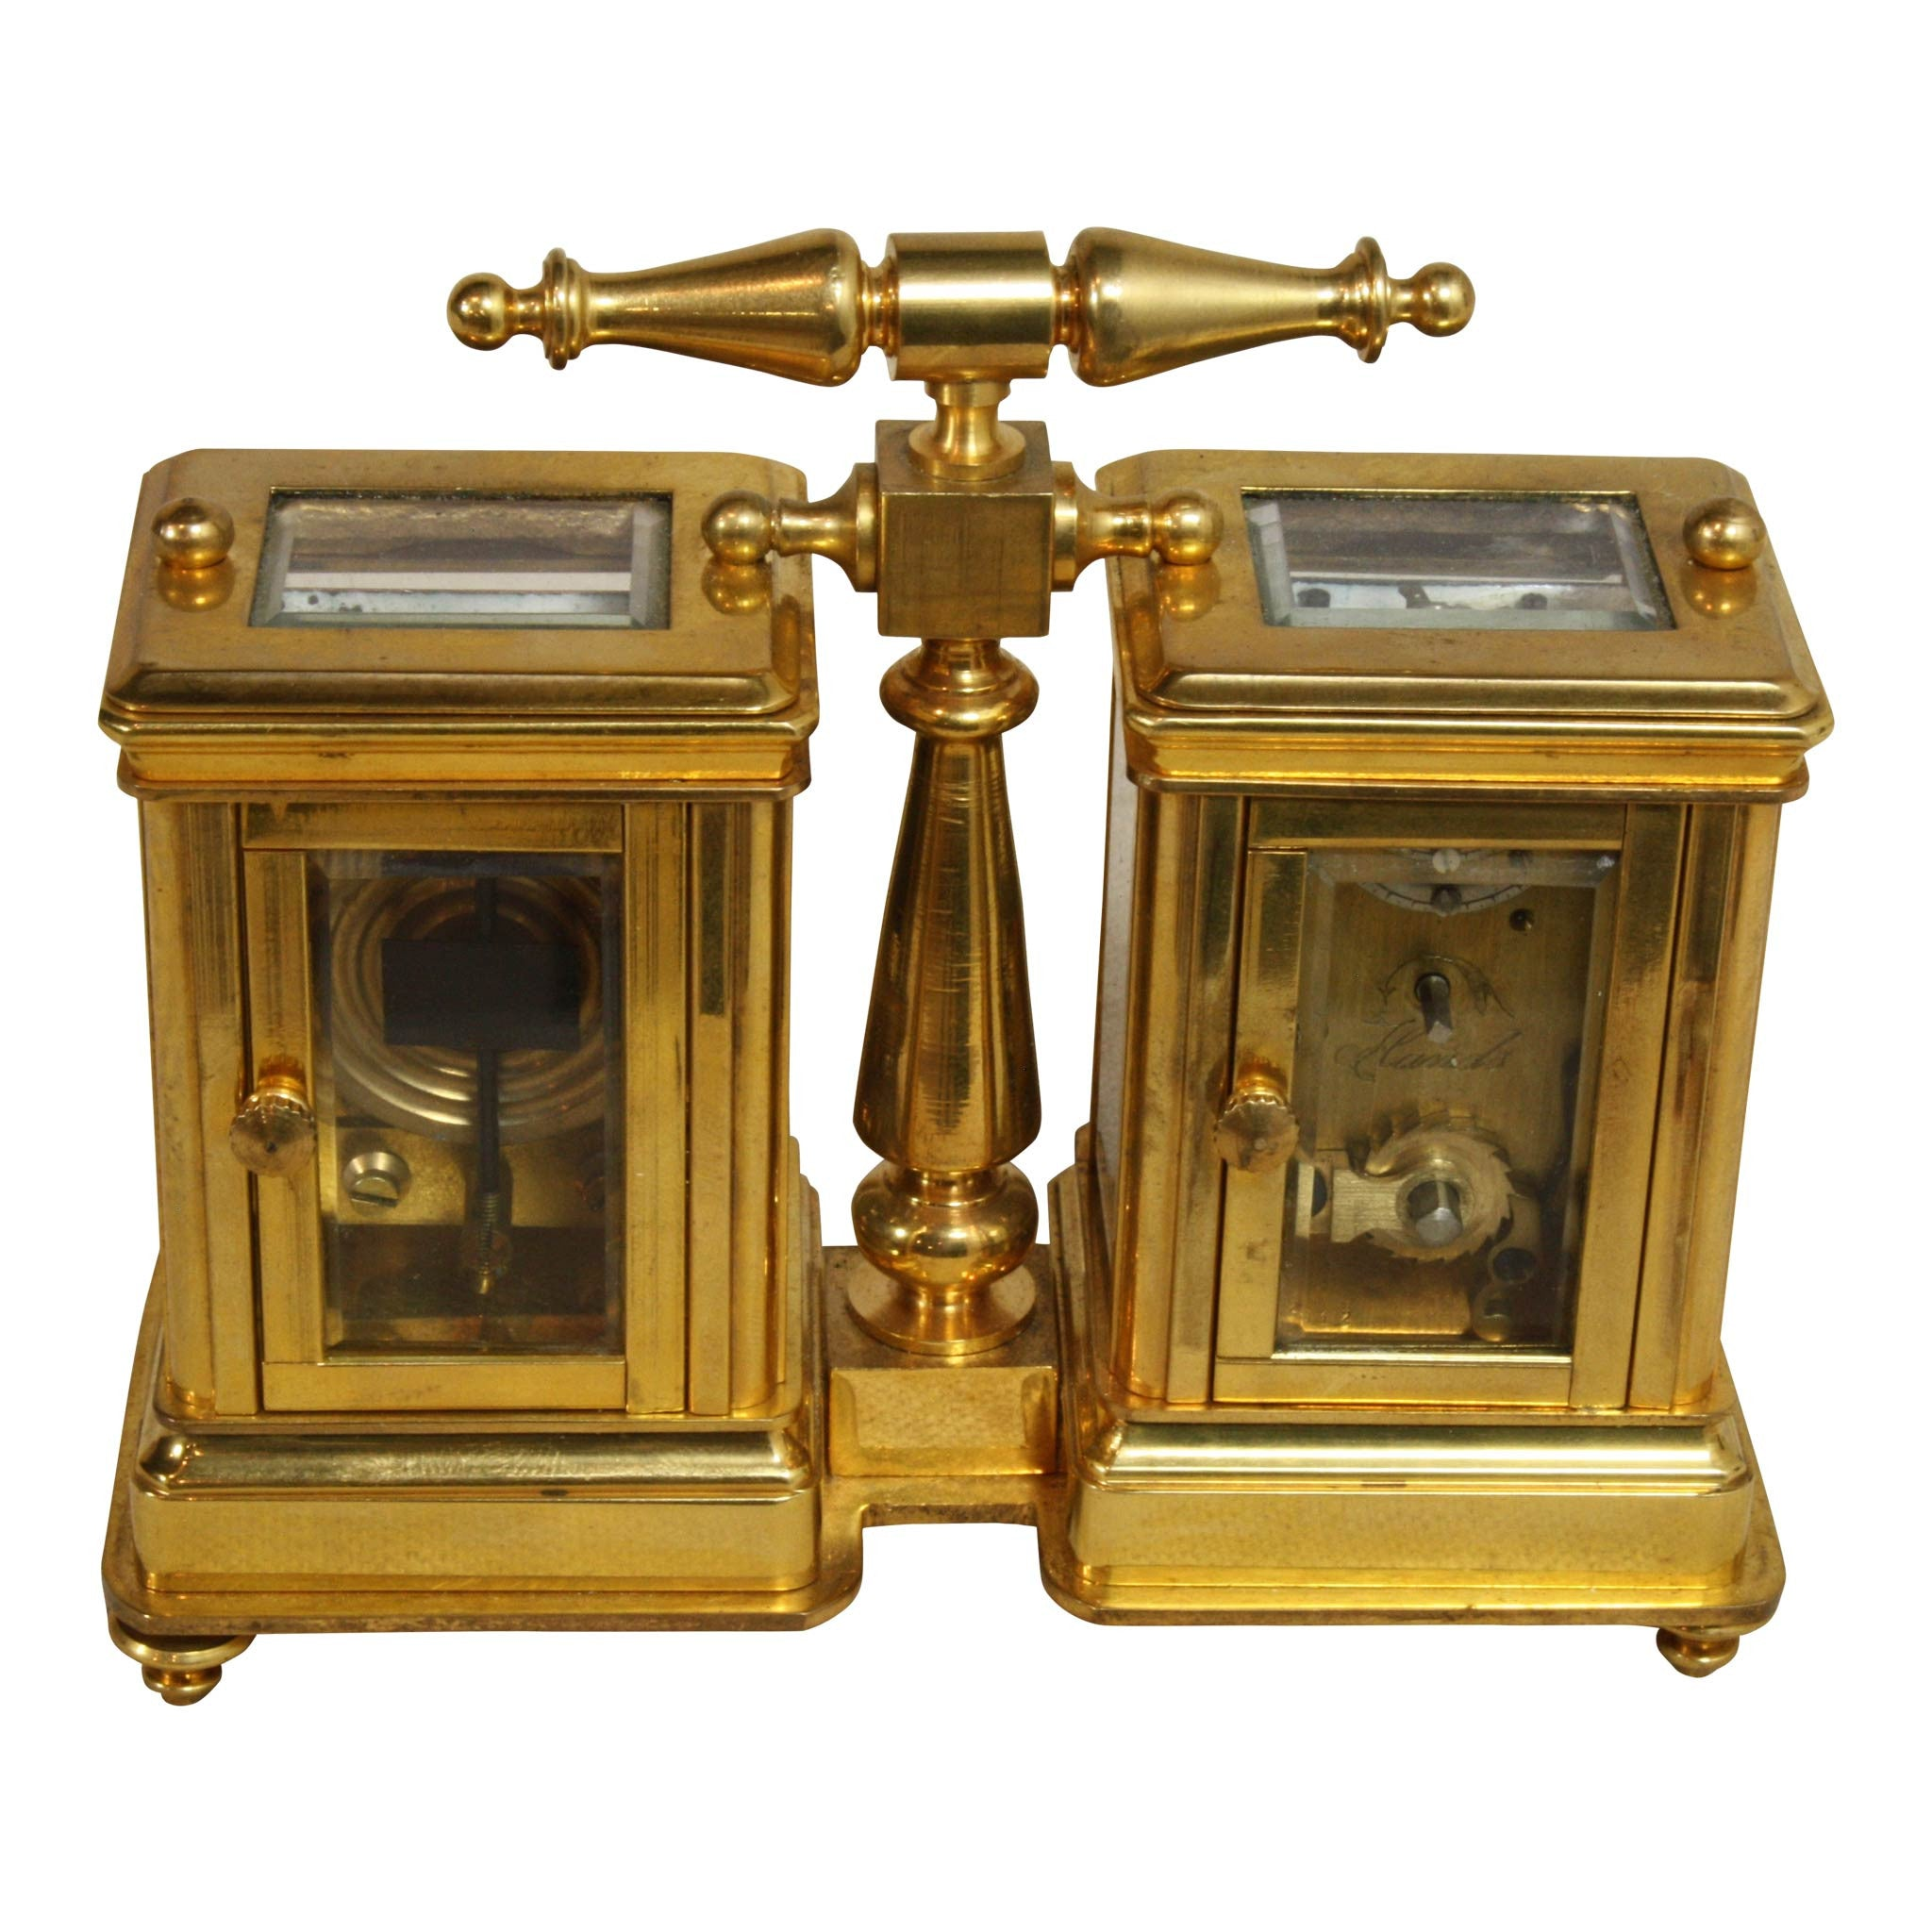 Brass and Glass Clock and Barometer